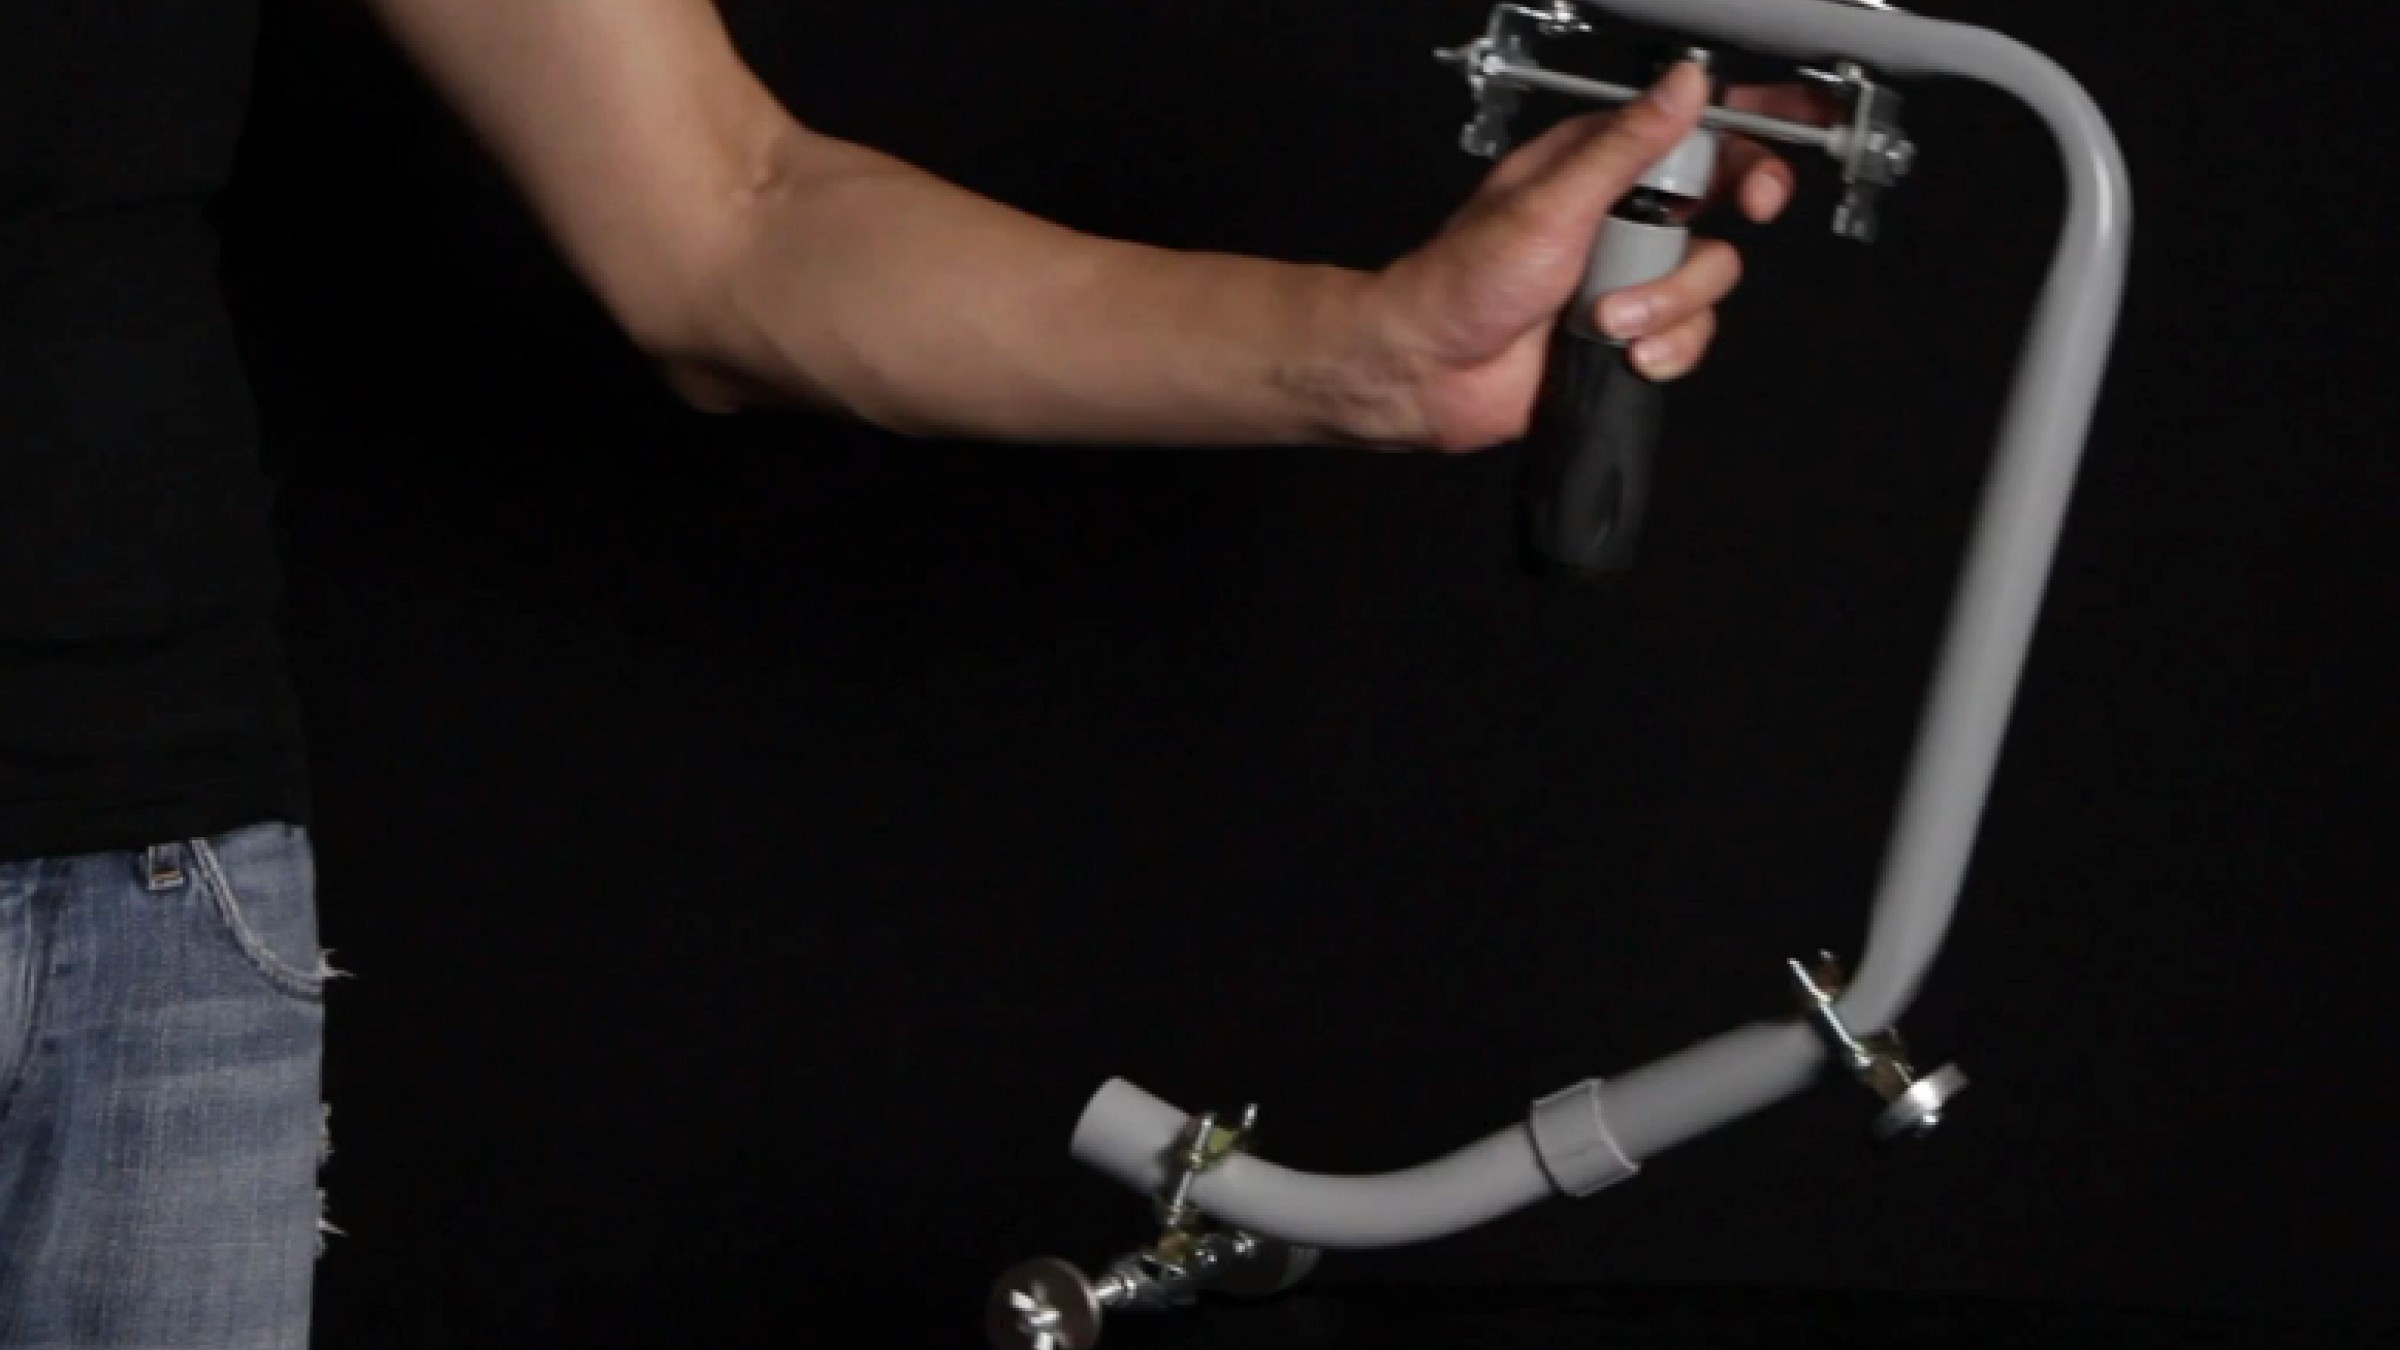 Build this diy dslr flying camera stabilizer with off the shelf parts for about 100